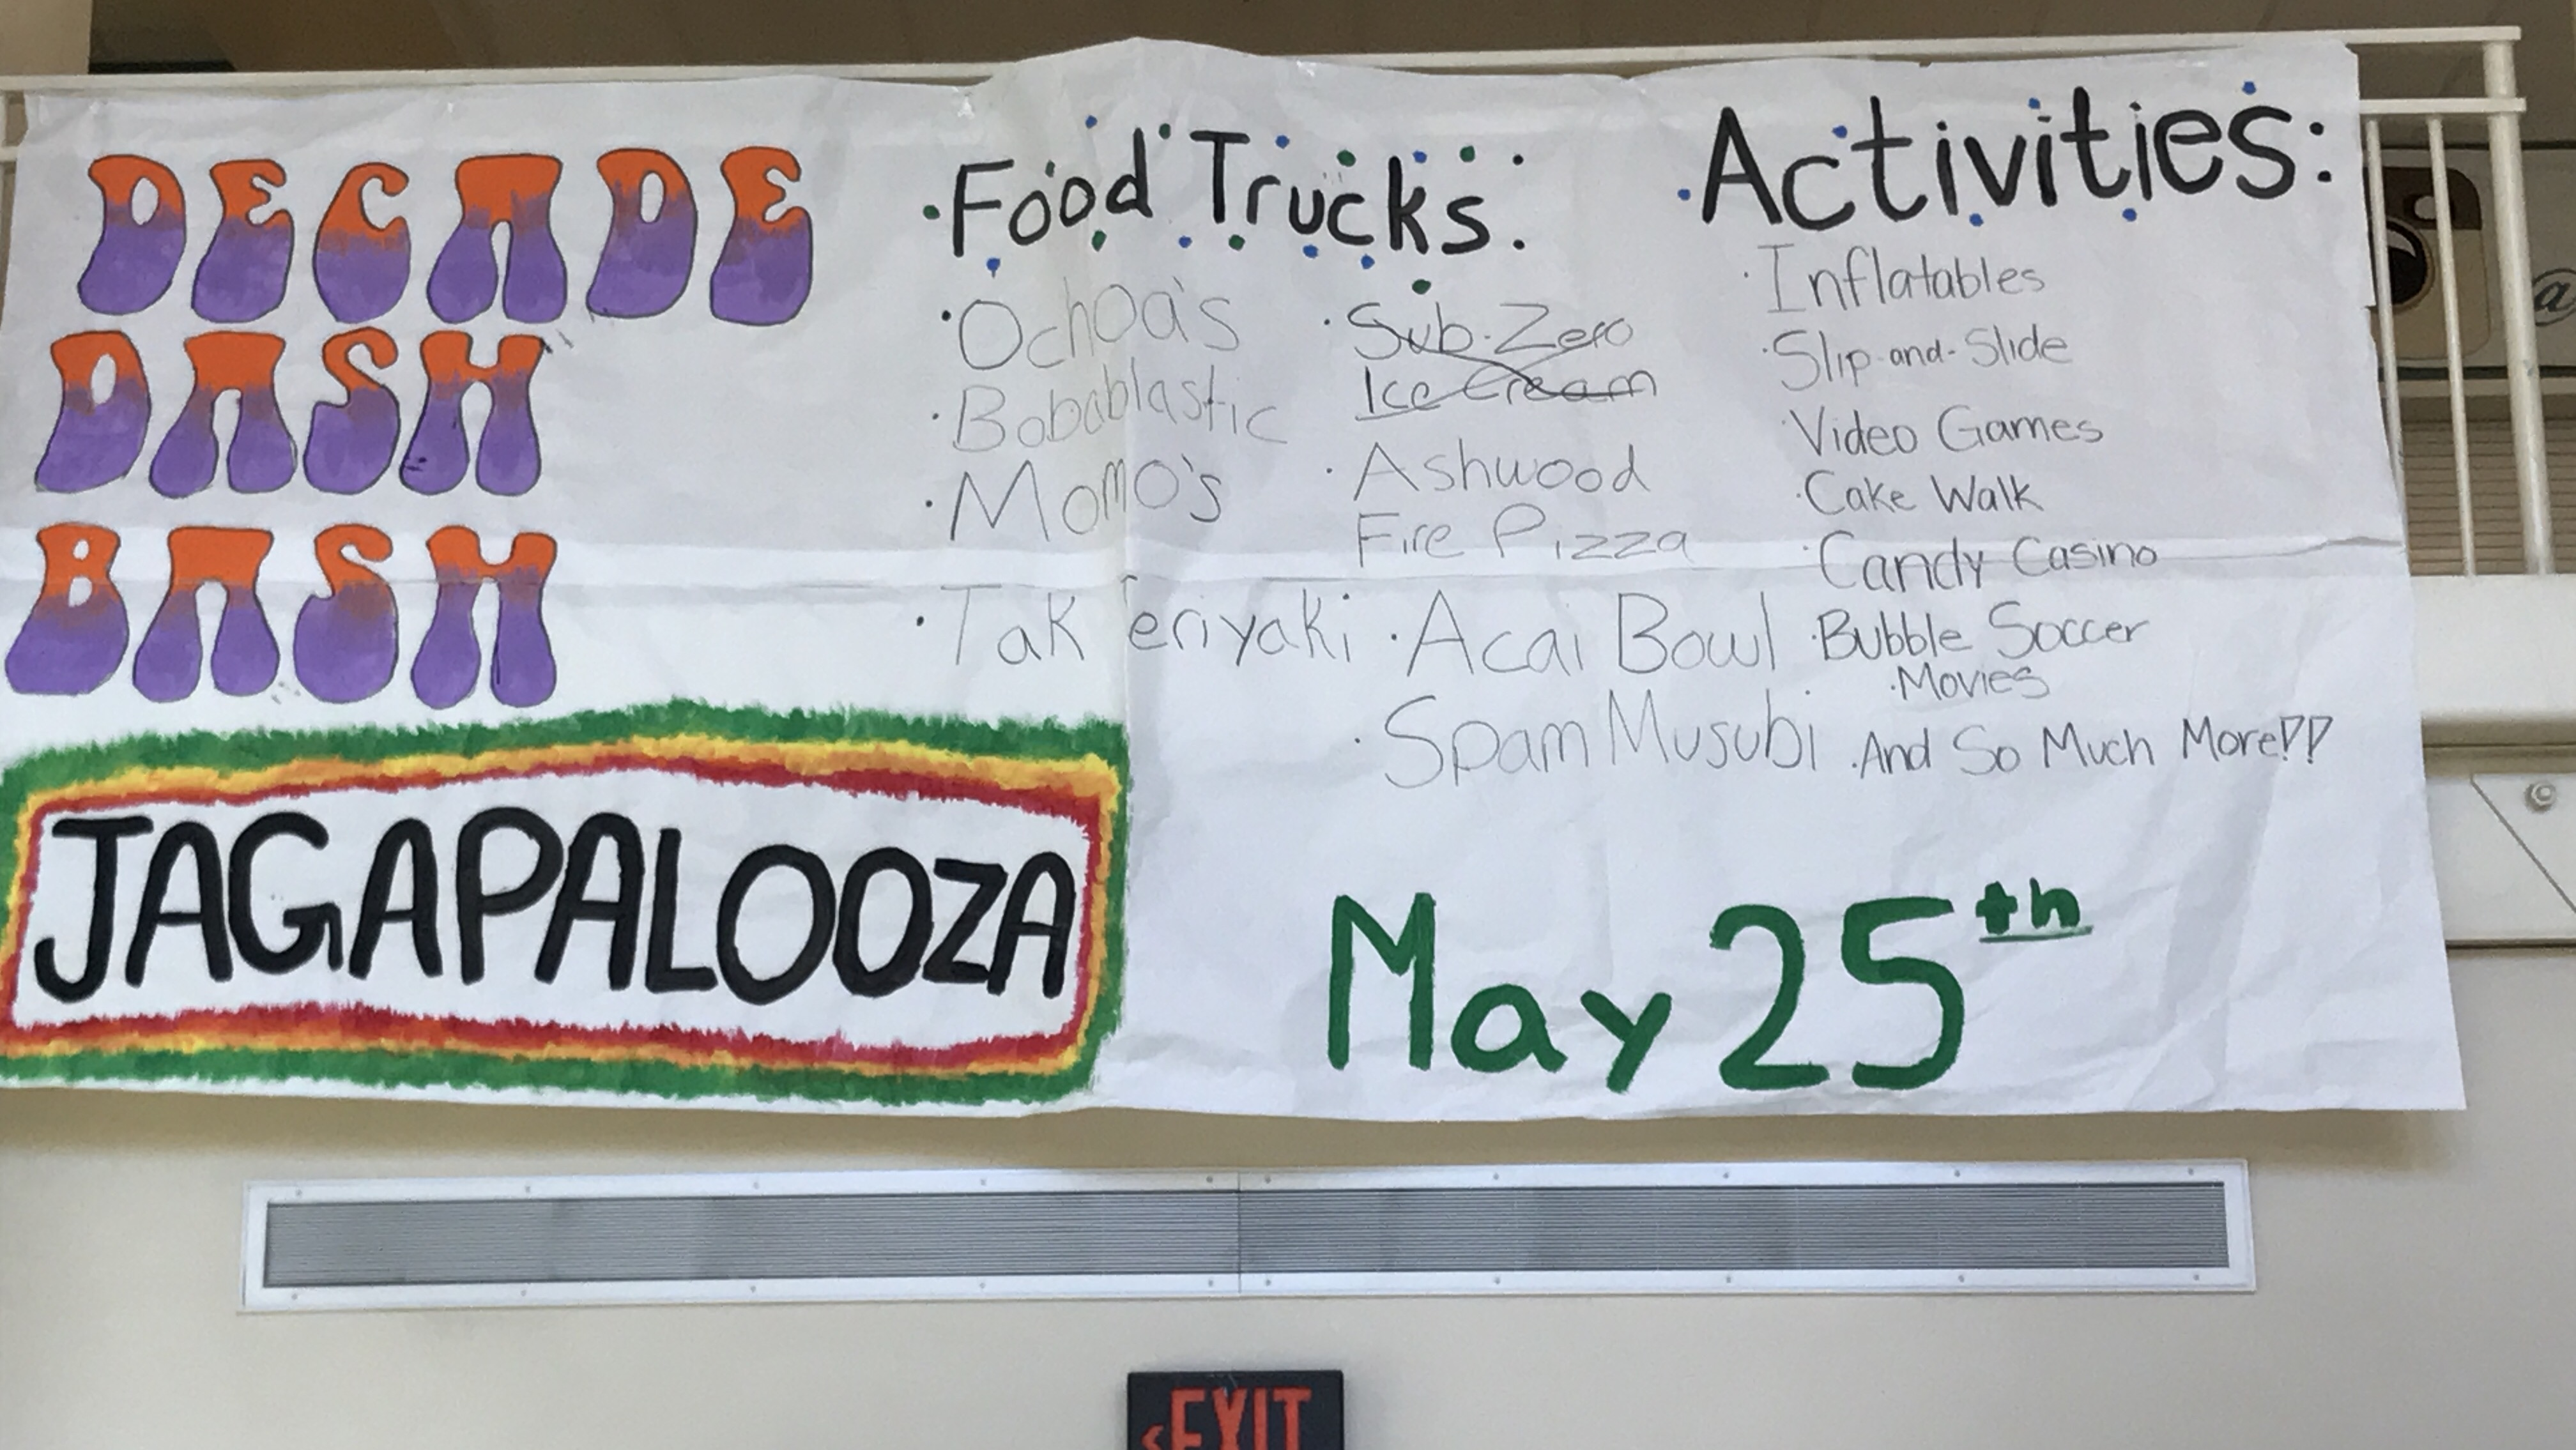 Jagapalooza Food Trucks